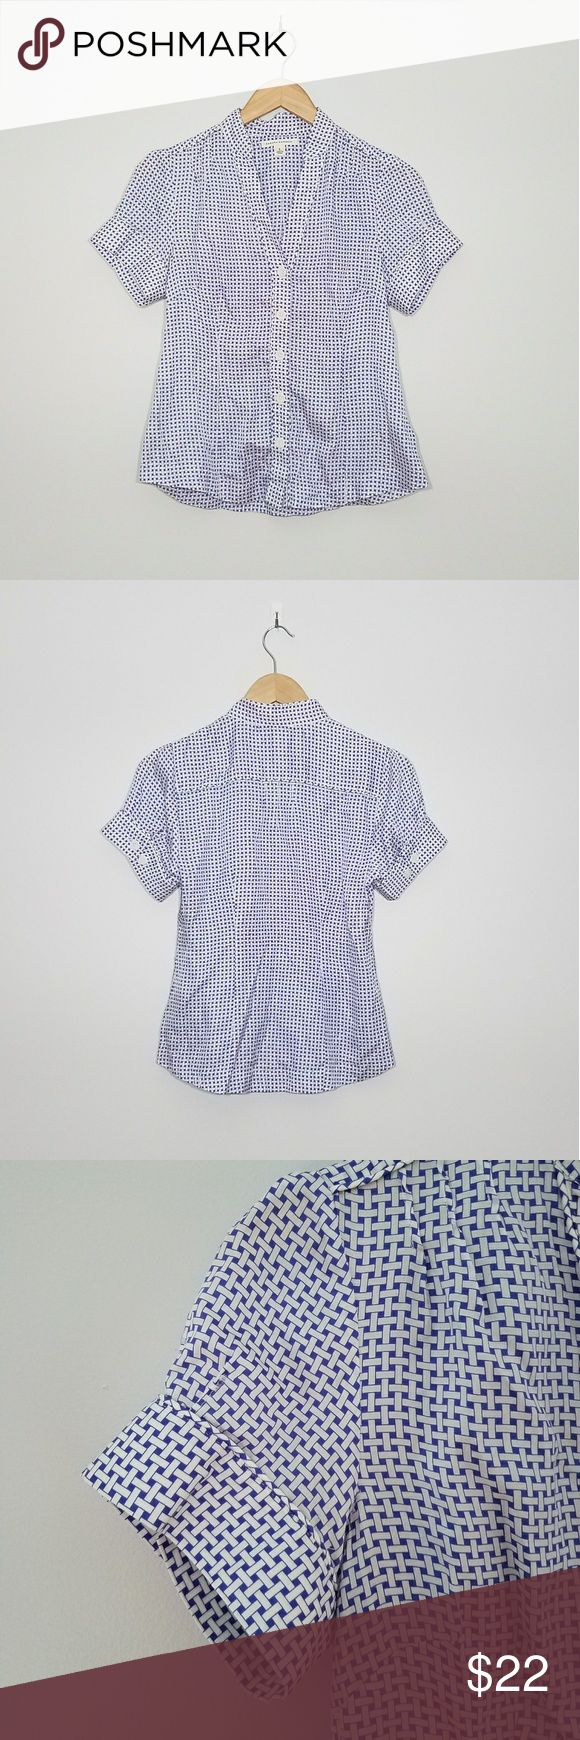 """Banana Republic white blue button down top Banana Republic short sleeved button down with white and blue basket weave design. V-neck. Large white buttons line the front and decorate the cuffed sleeves to add interest. Measurements are approx 36"""" bust, 23"""" length from top of shoulder to bottom hem. Excellent used condition. Banana Republic Tops Button Down Shirts"""